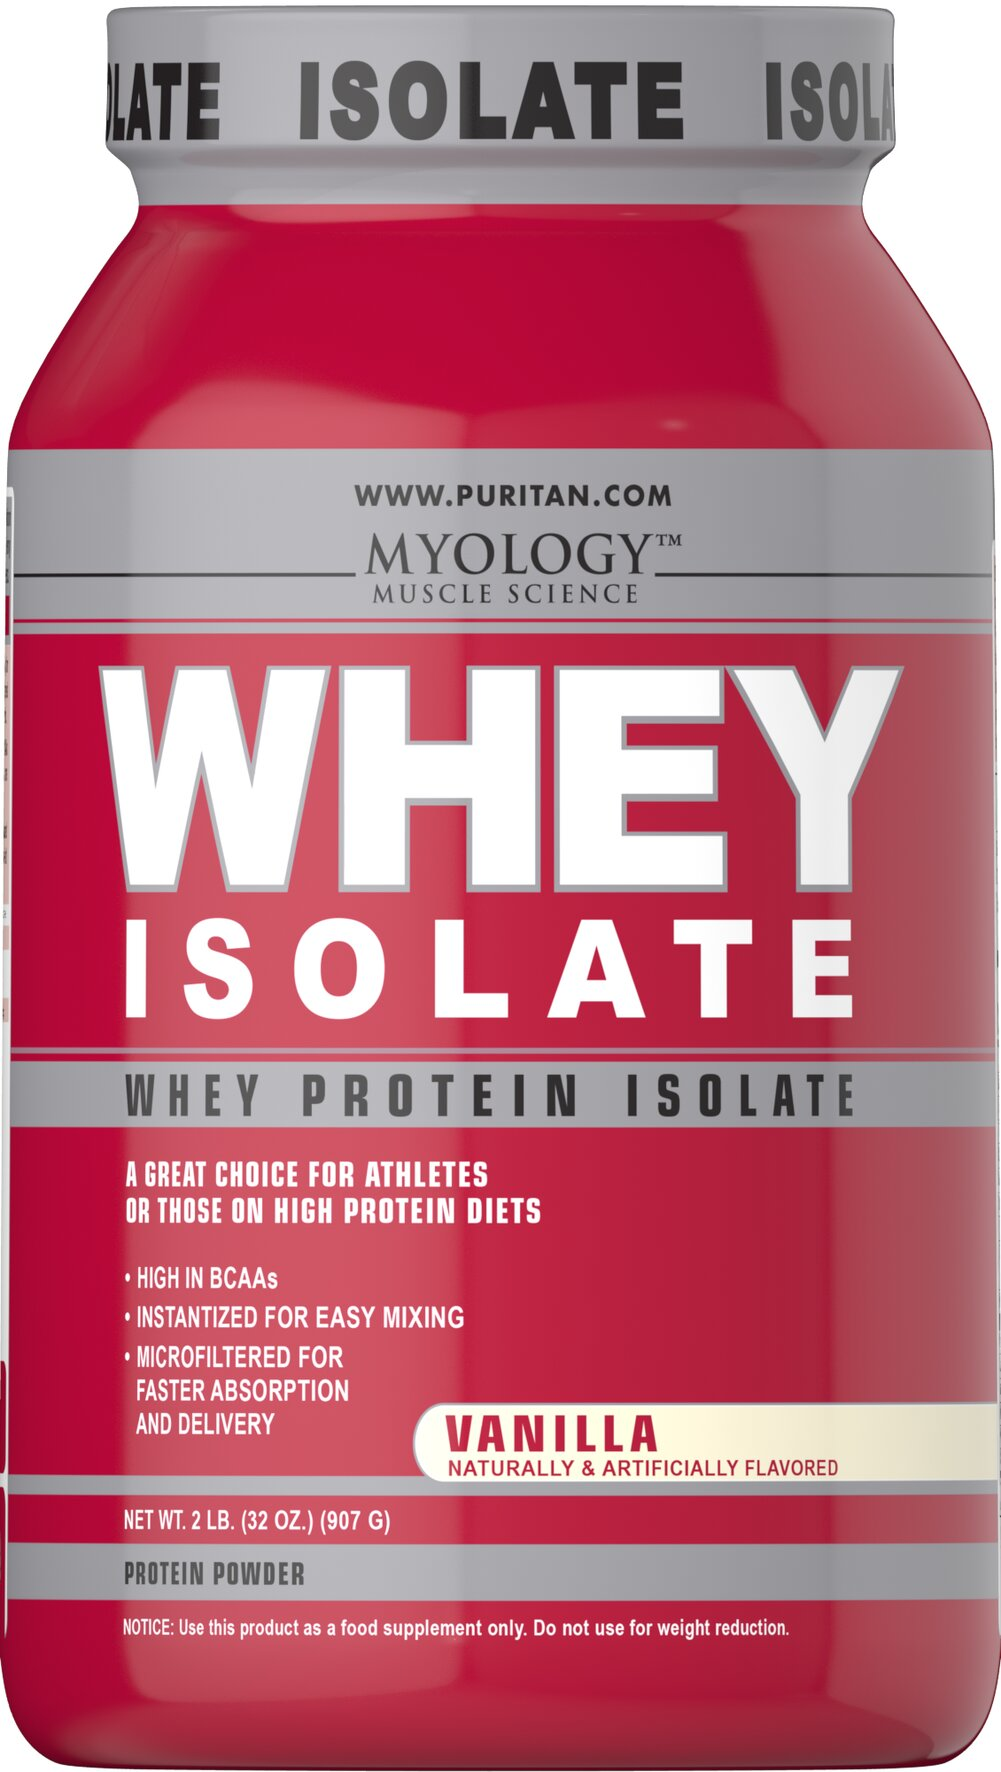 Whey Protein Isolate Vanilla <p>Whey is popular with bodybuilders, people on high protein diets, and anyone looking for a quick, easy-to-use nutritional drink. Our Whey Isolate Powder is specifically designed for anyone looking for the highest quality nutrition to support their workout and fitness goals.</p><p>Whey is a natural by-product of milk, and is loaded with strength-building protein, which plays a role in optimal nutrition.** Whey Isolate contains more Branched Chain A